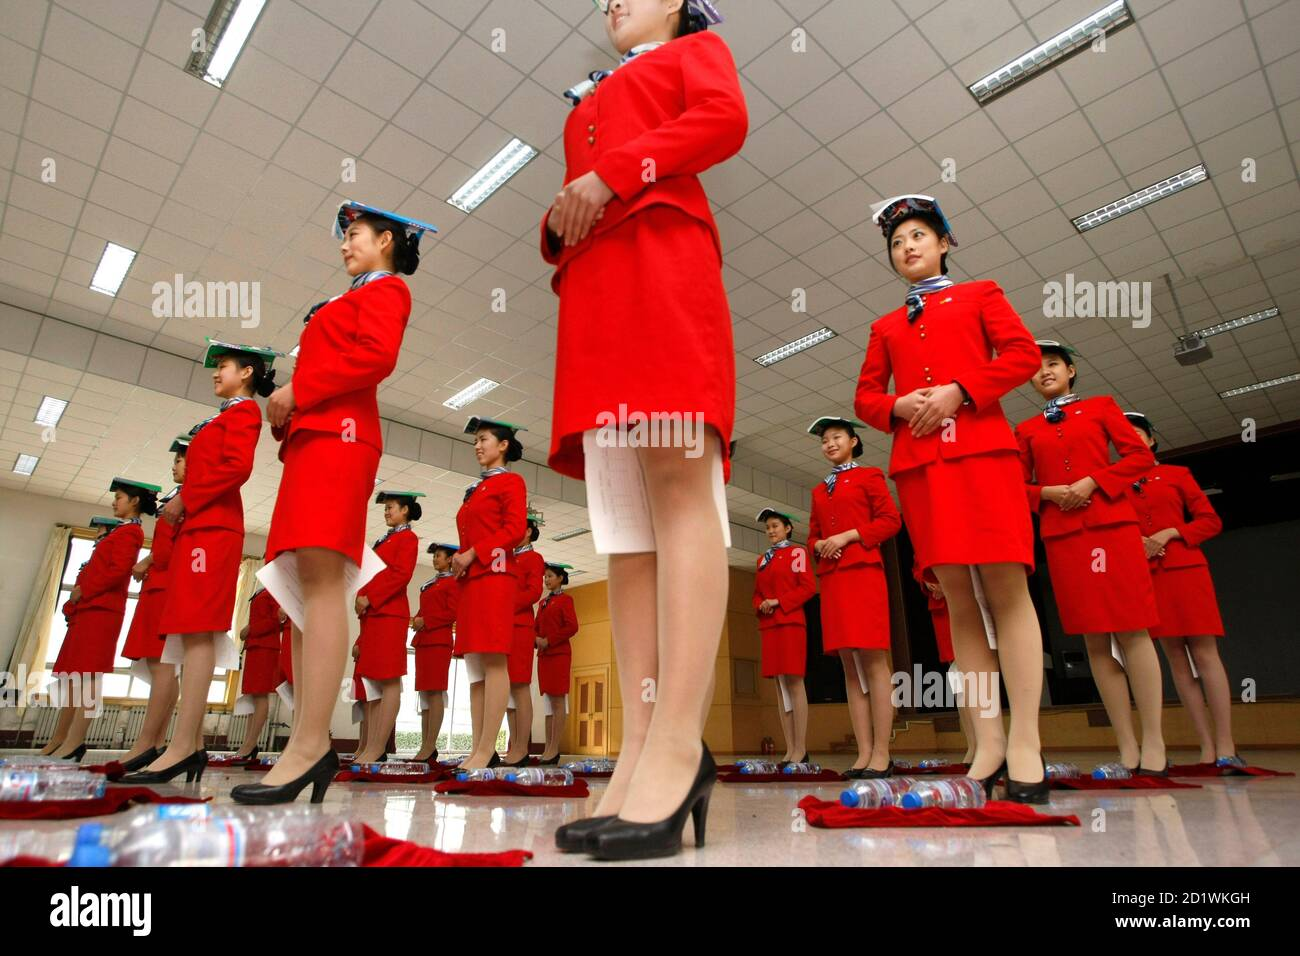 Students hold a piece of paper between their legs as they balance a book on their heads during etiquette training at a vocational school in Beijing October 25, 2007. Around 1,400 aviation service students, mostly between the ages of 16 and 17, are currently going through physical conditioning as well as professional training for dressing and etiquette in order to serve as the stewards during the 2008 Beijing Olympics, according to the school announcement.   REUTERS/Jason Lee (CHINA) Foto de stock